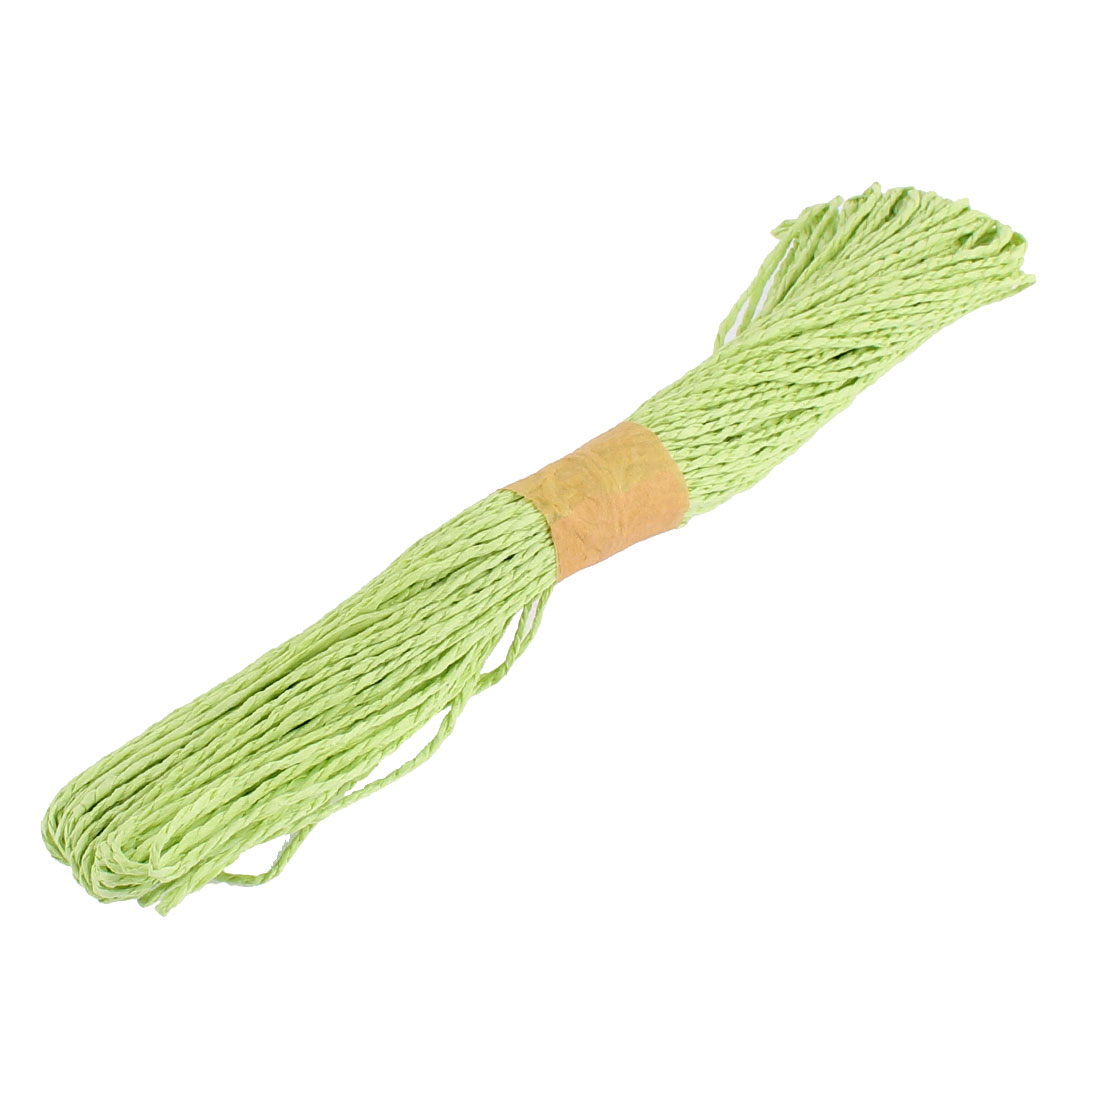 Paper Raffia Cord Ribbon Gift Wrap Craft Pack Rope Strings Green